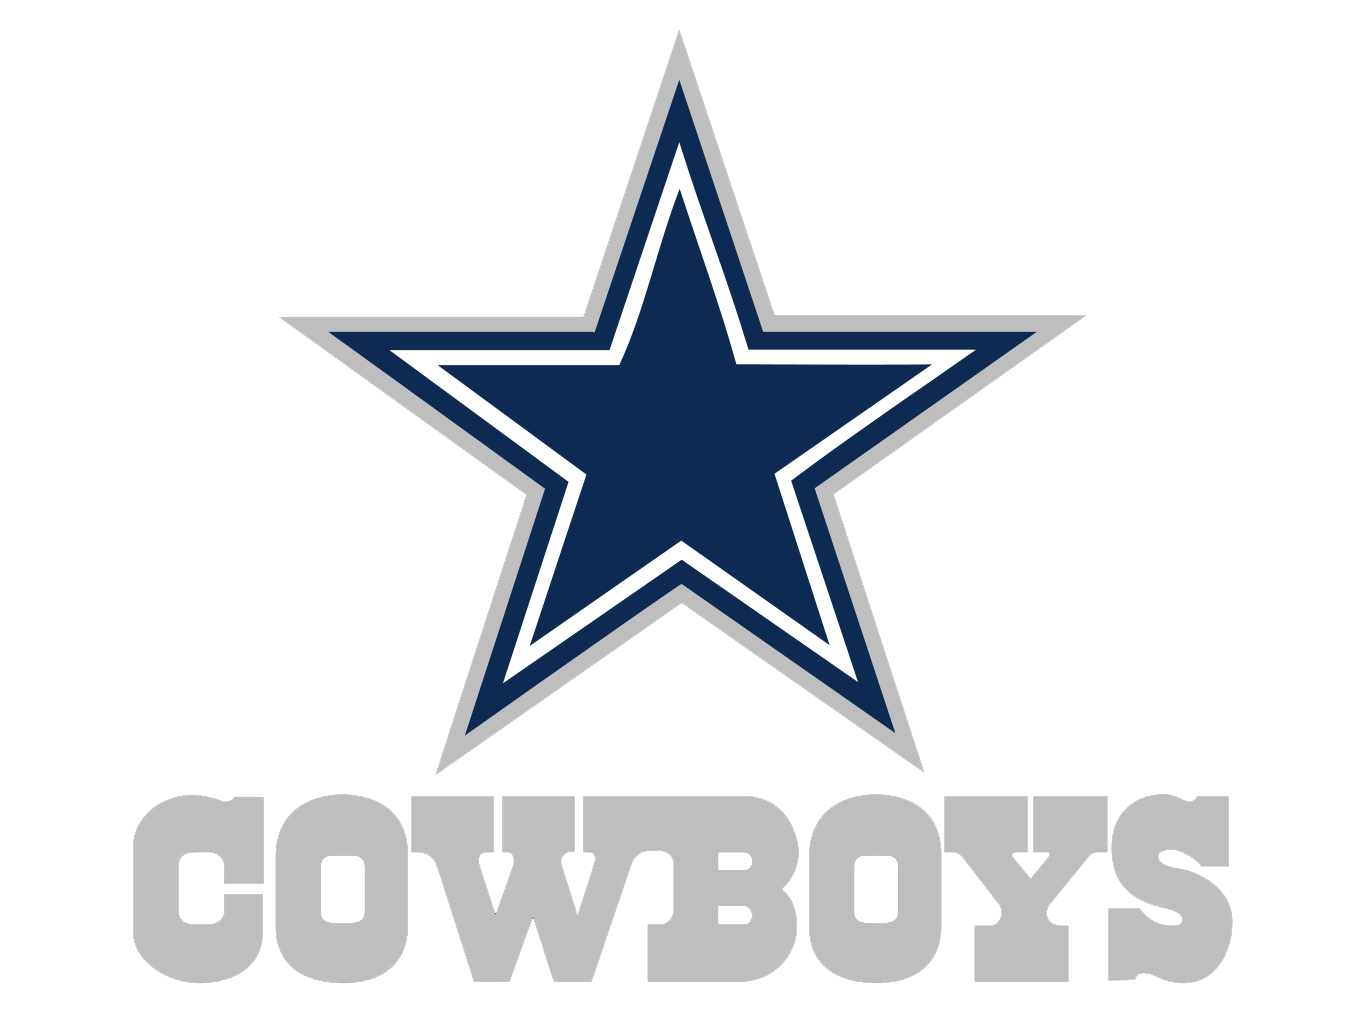 Cowboys-logo1 edit.png